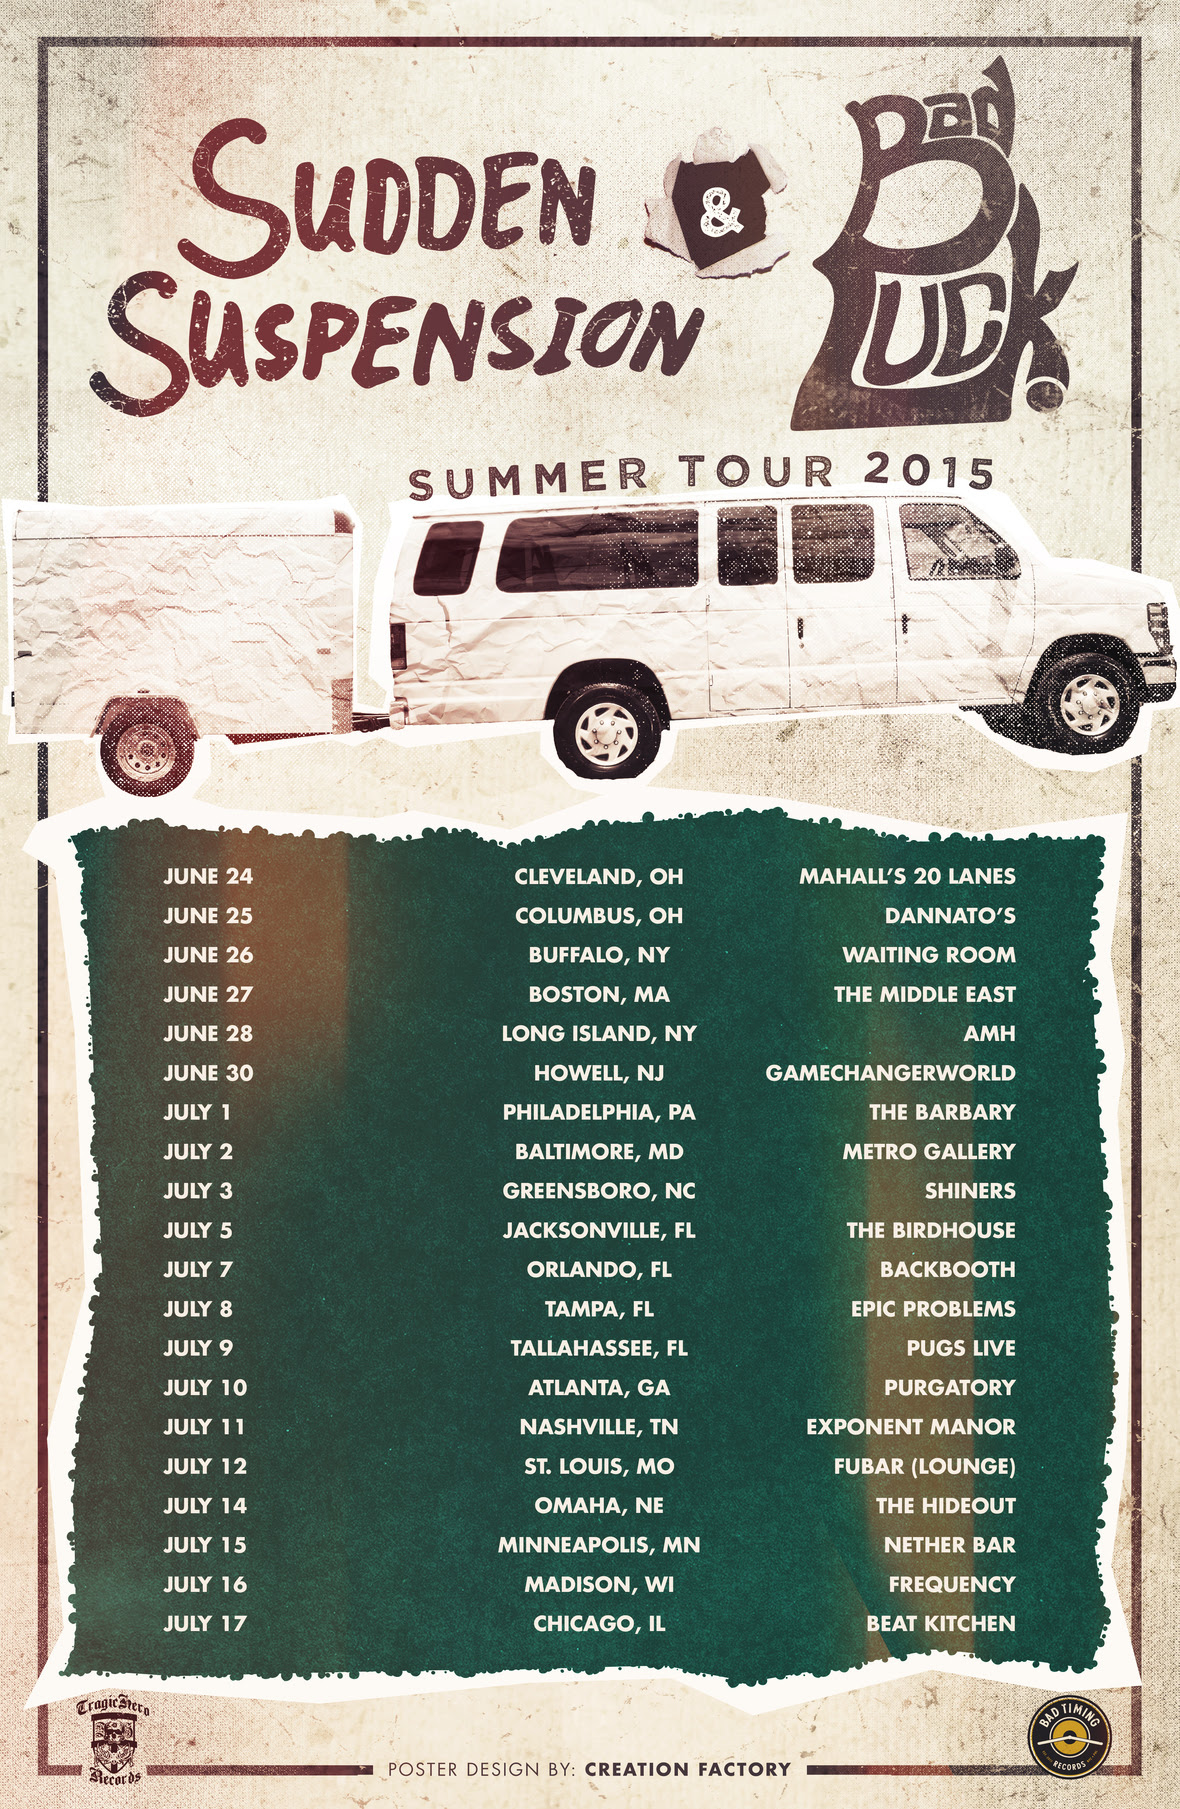 sudden suspension summer tour